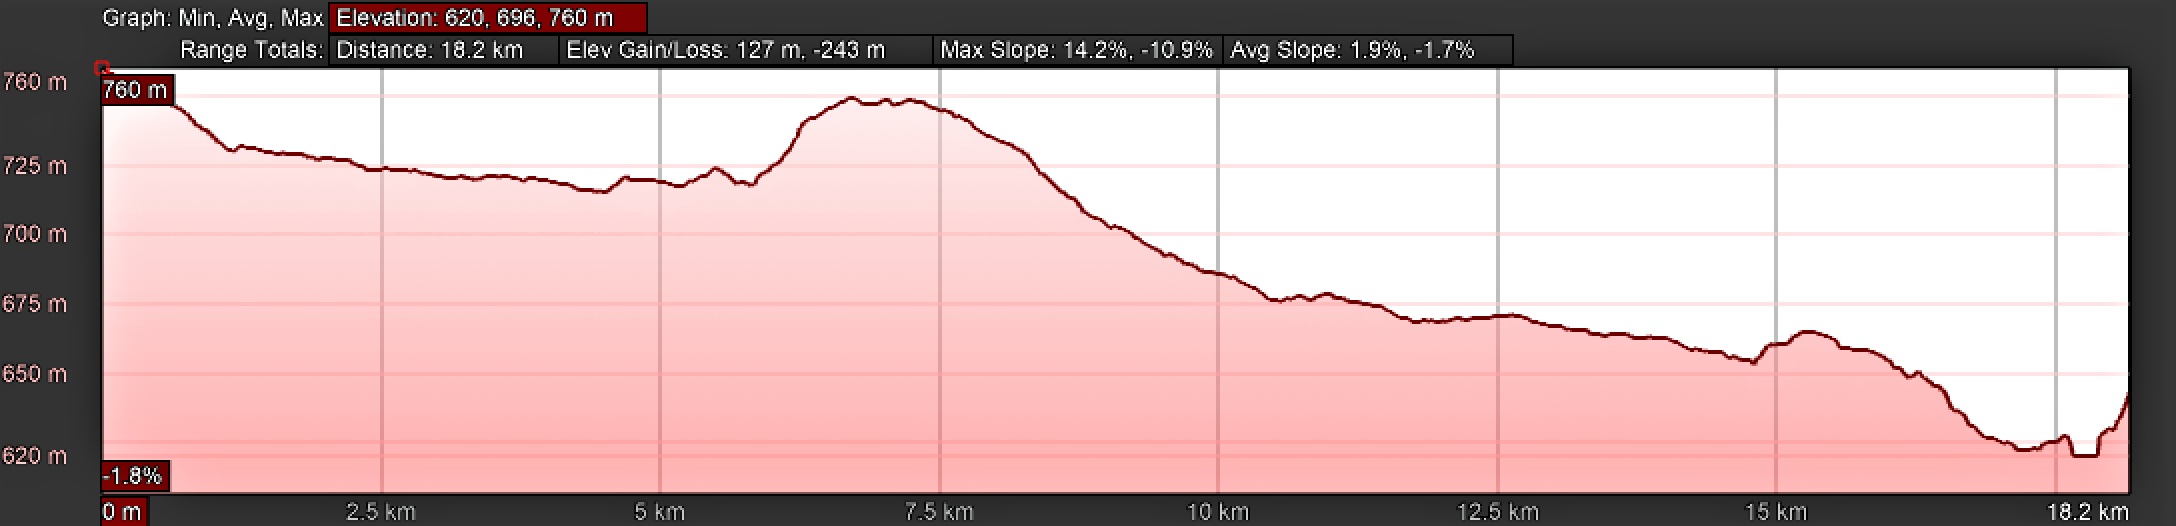 Elevation Profile, Vía de la Plata, Villanueva de Campeán to Zamora